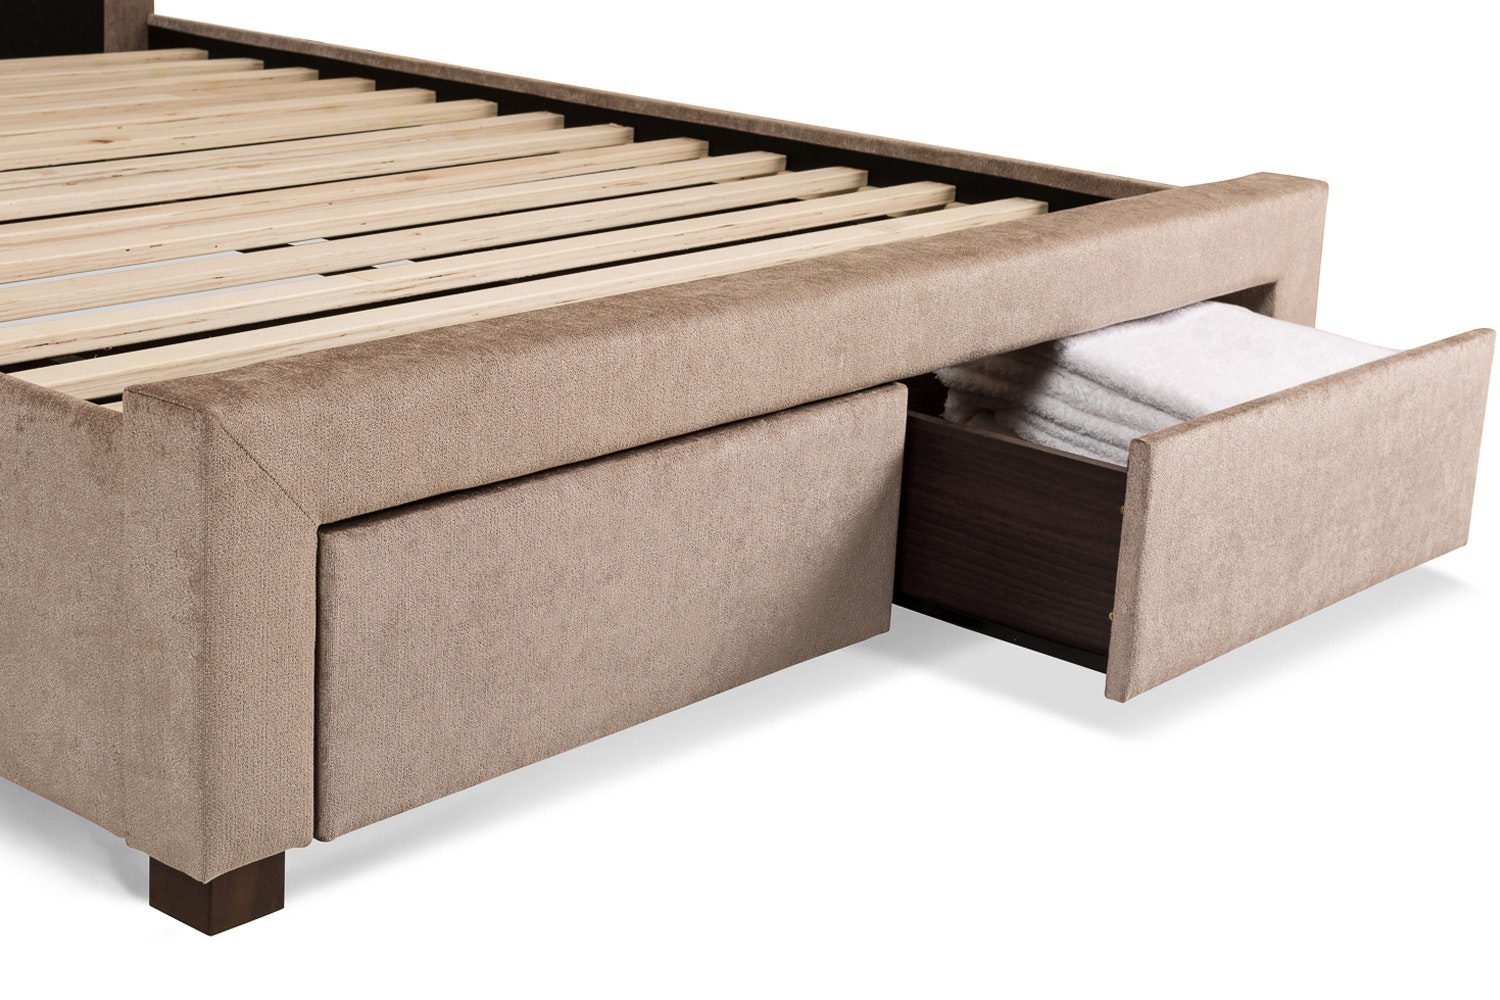 Regency King Bed Frame with Drawers